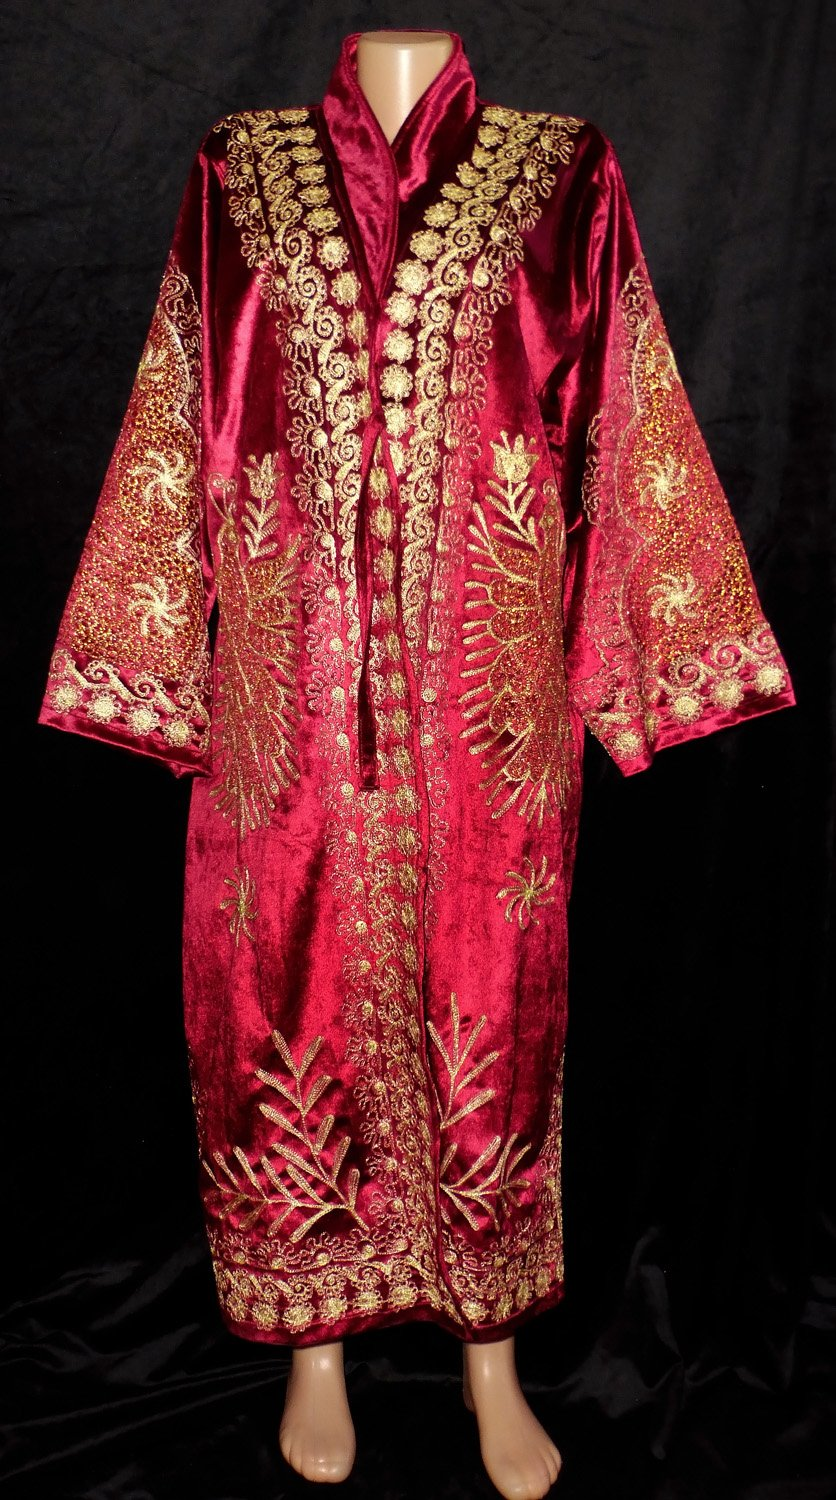 TRADITIONAL BUKHARA OUTWEAR COSTUME ROBE JACKET SILK GOLD EMBROIDERED A11724